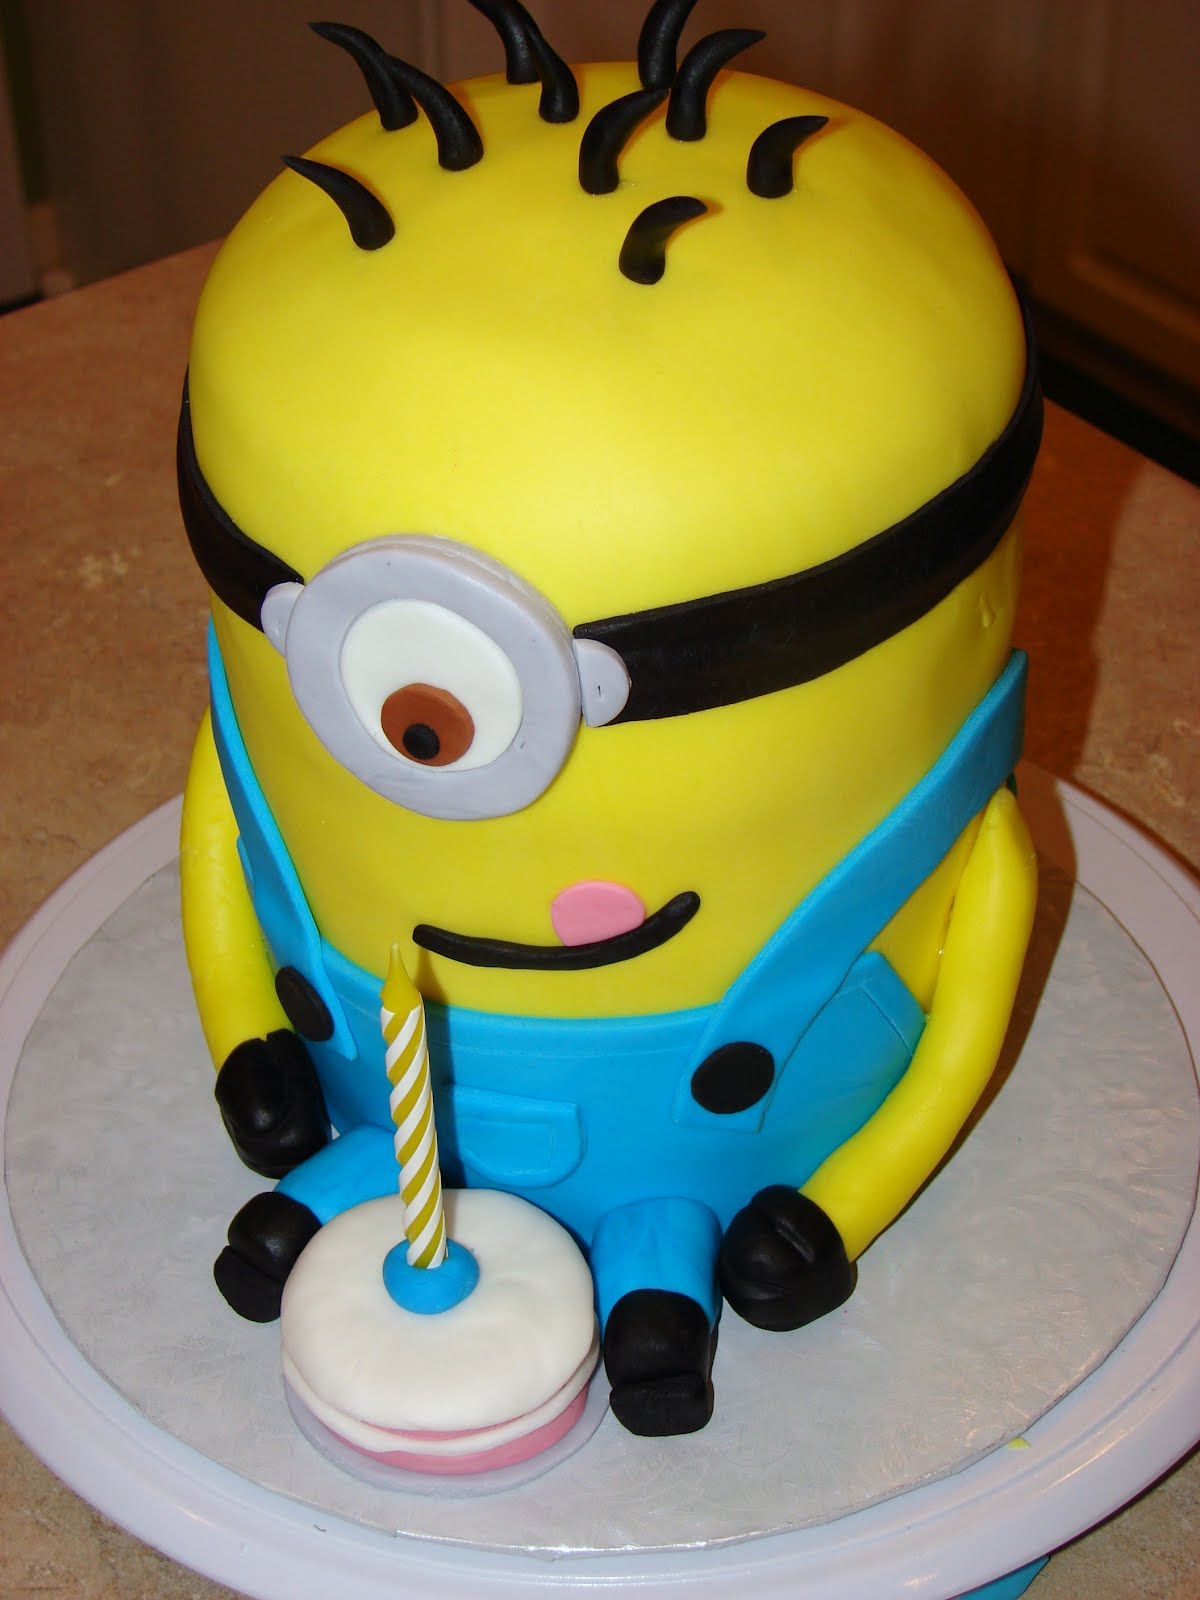 Admirable Minion Cakes Decoration Ideas Little Birthday Cakes Funny Birthday Cards Online Inifofree Goldxyz